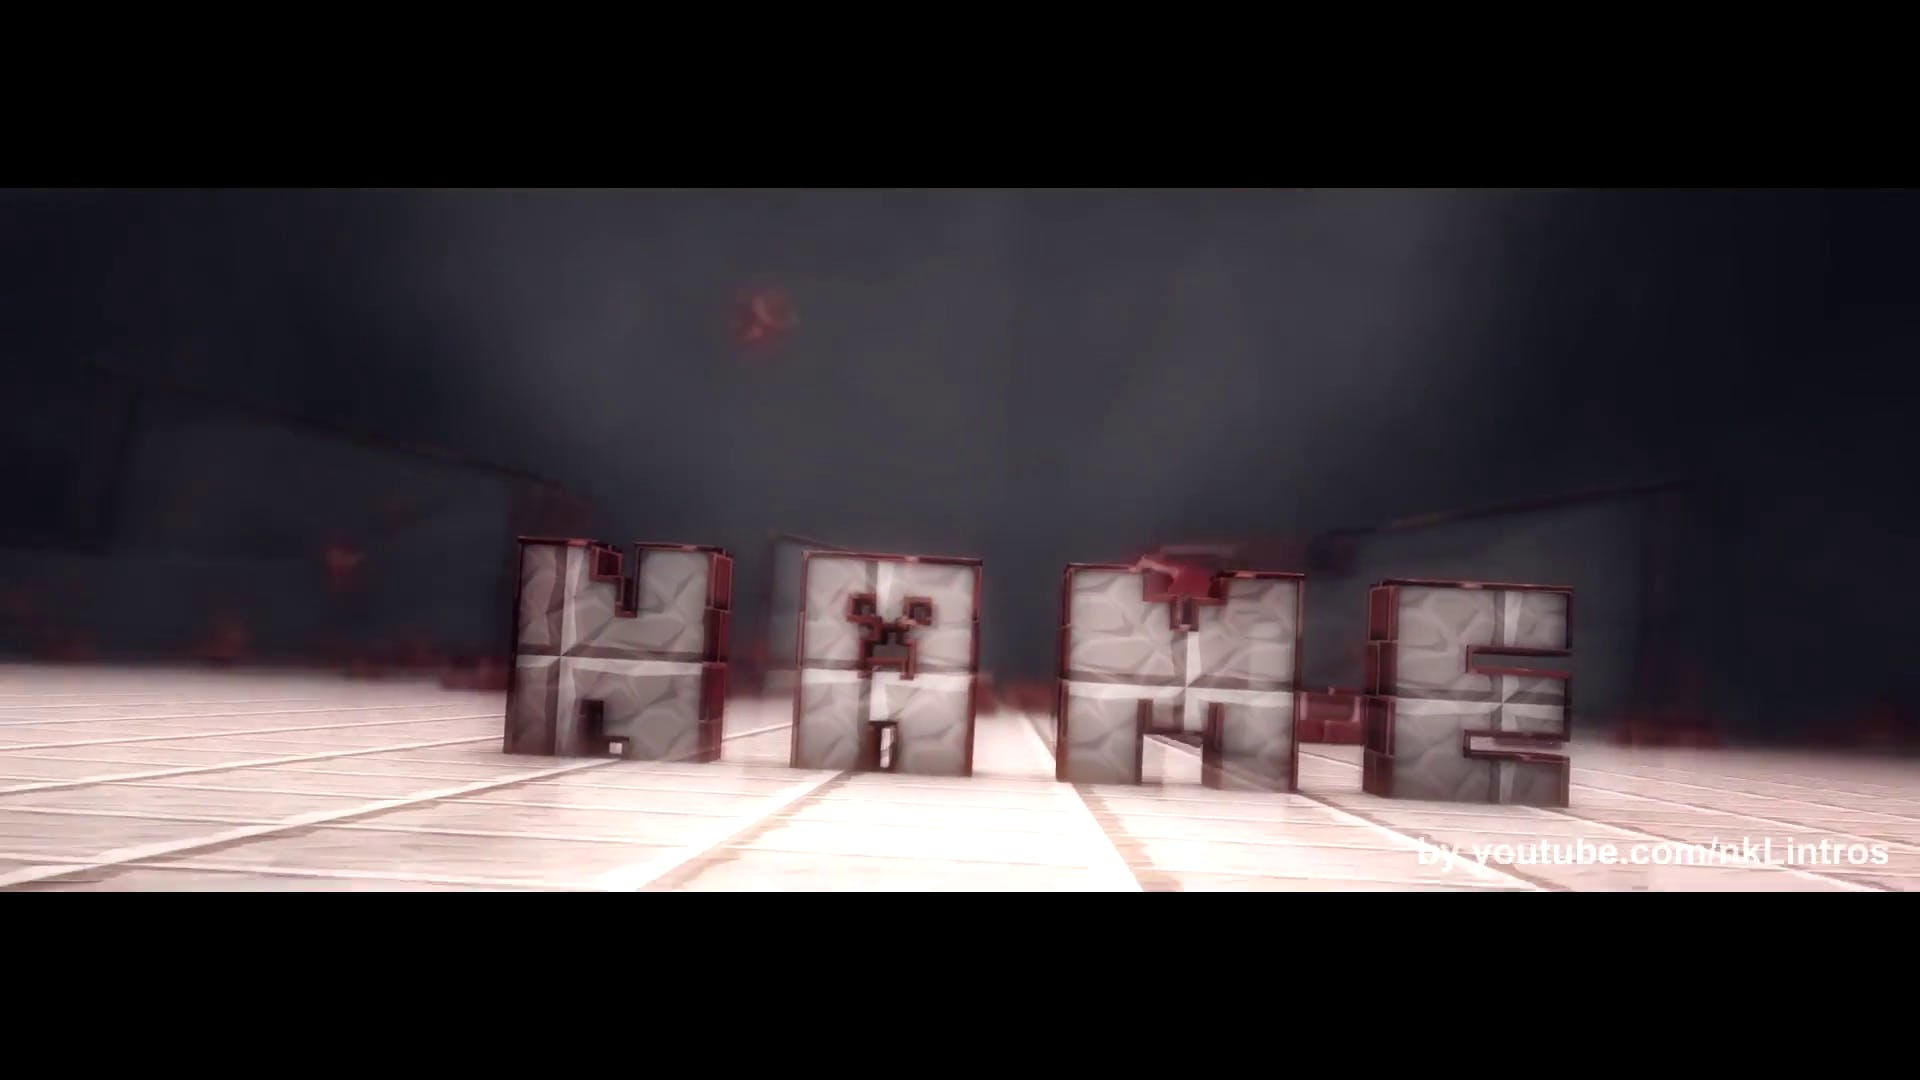 Minecraft Cinema 4D After Effects Intro Template FREE DOWNLOAD